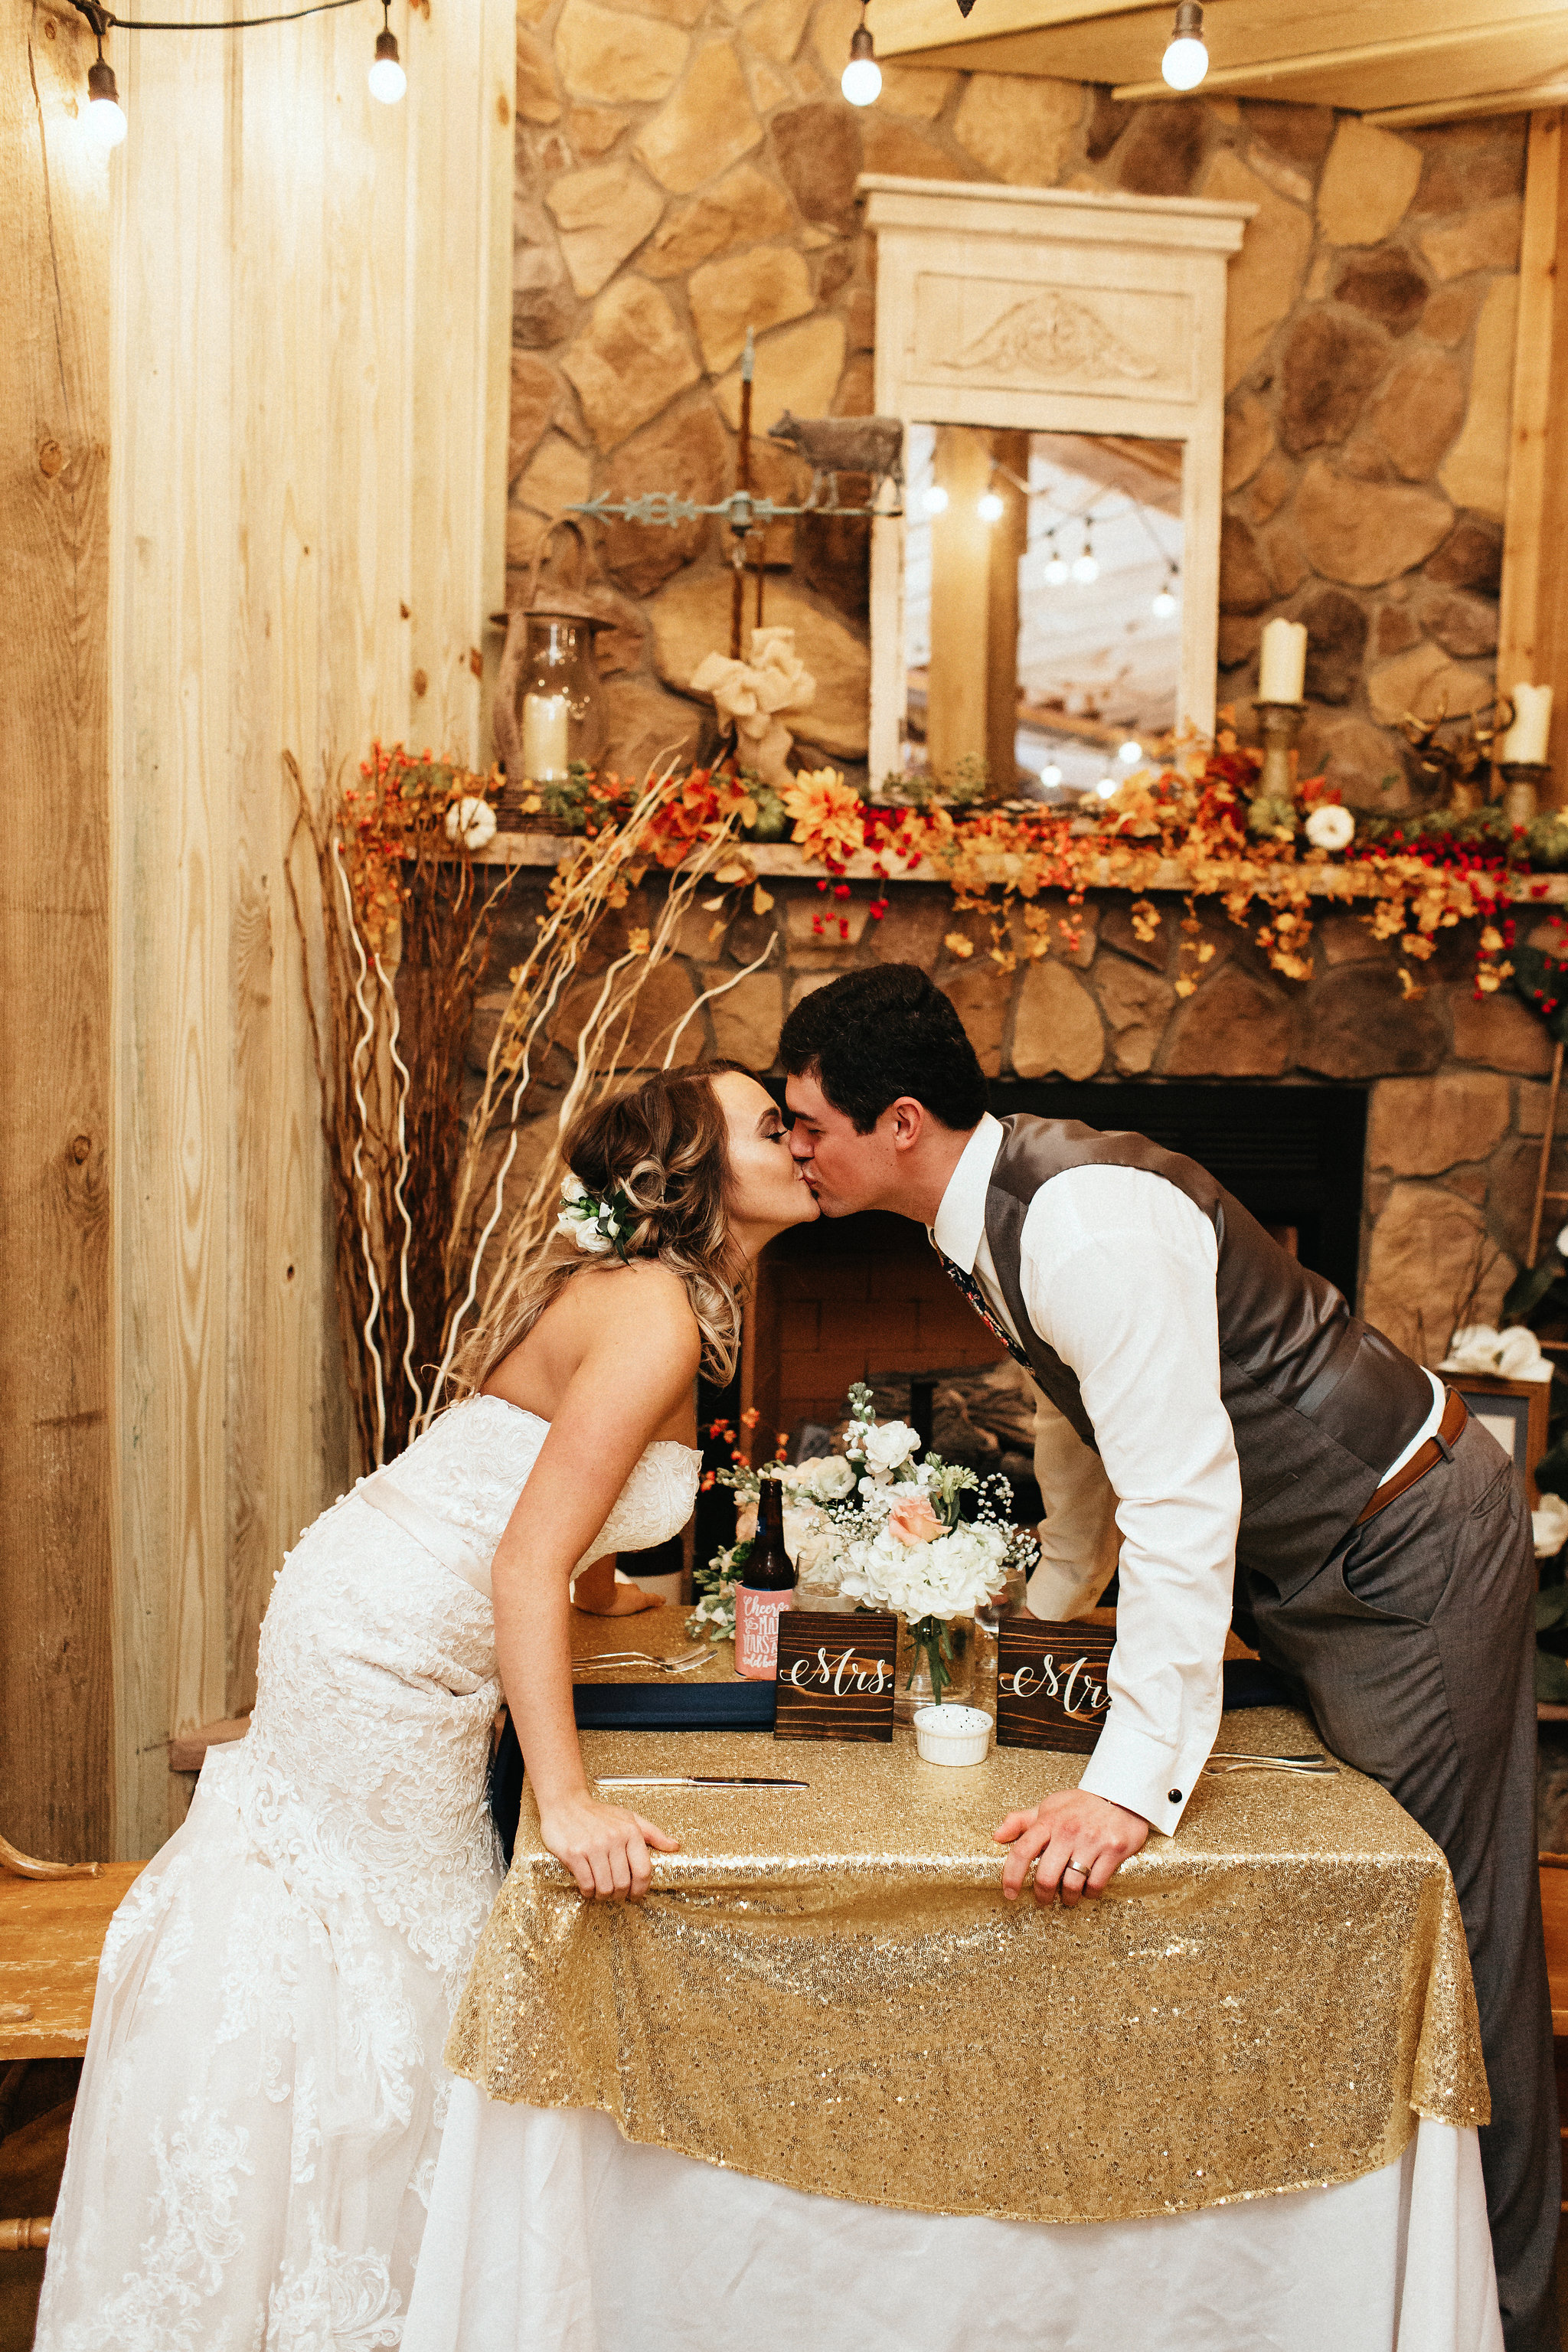 Ashley&NathanMarried2017-11-10at19.26.55PM89.jpg